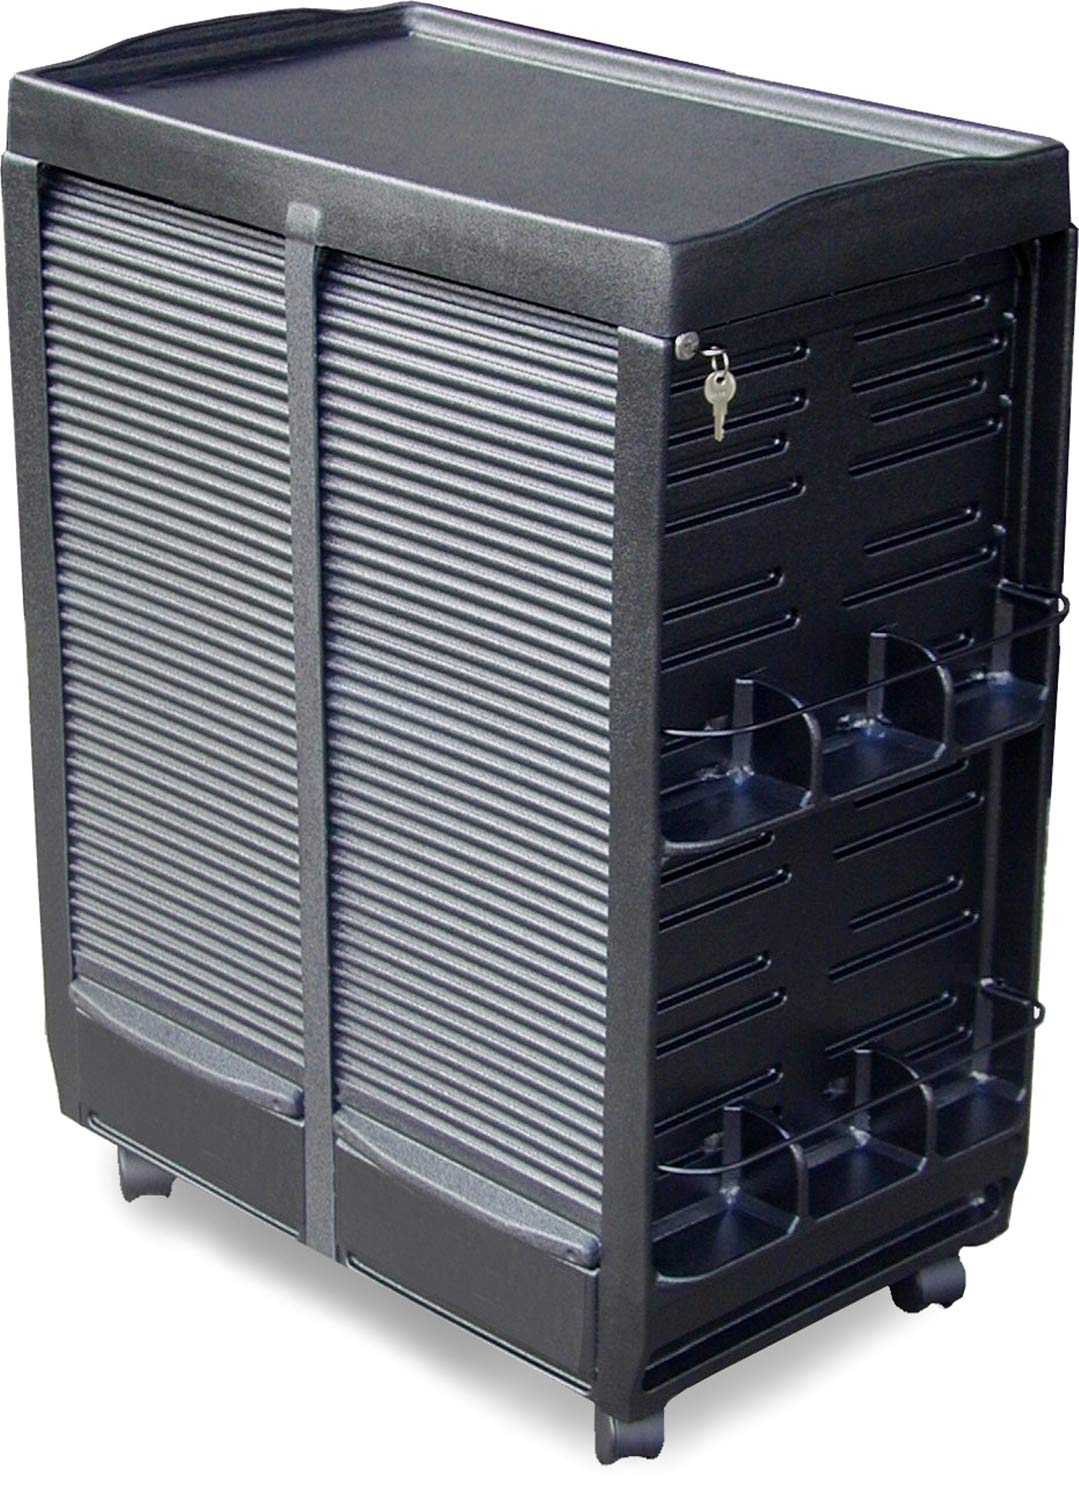 M180 M Medical Physician Storage Rollabout Trolley Cart Double Lockable Cabinets Made in USA